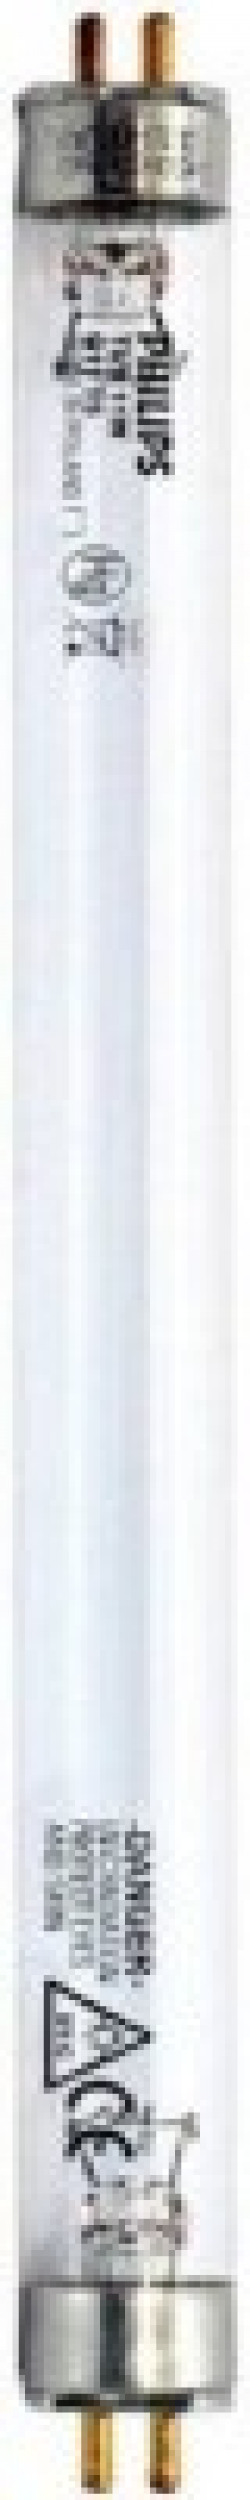 Philips UV Lamp Tube 11w 8  Solid Filter Cartridge(0.5, Pack of 1)